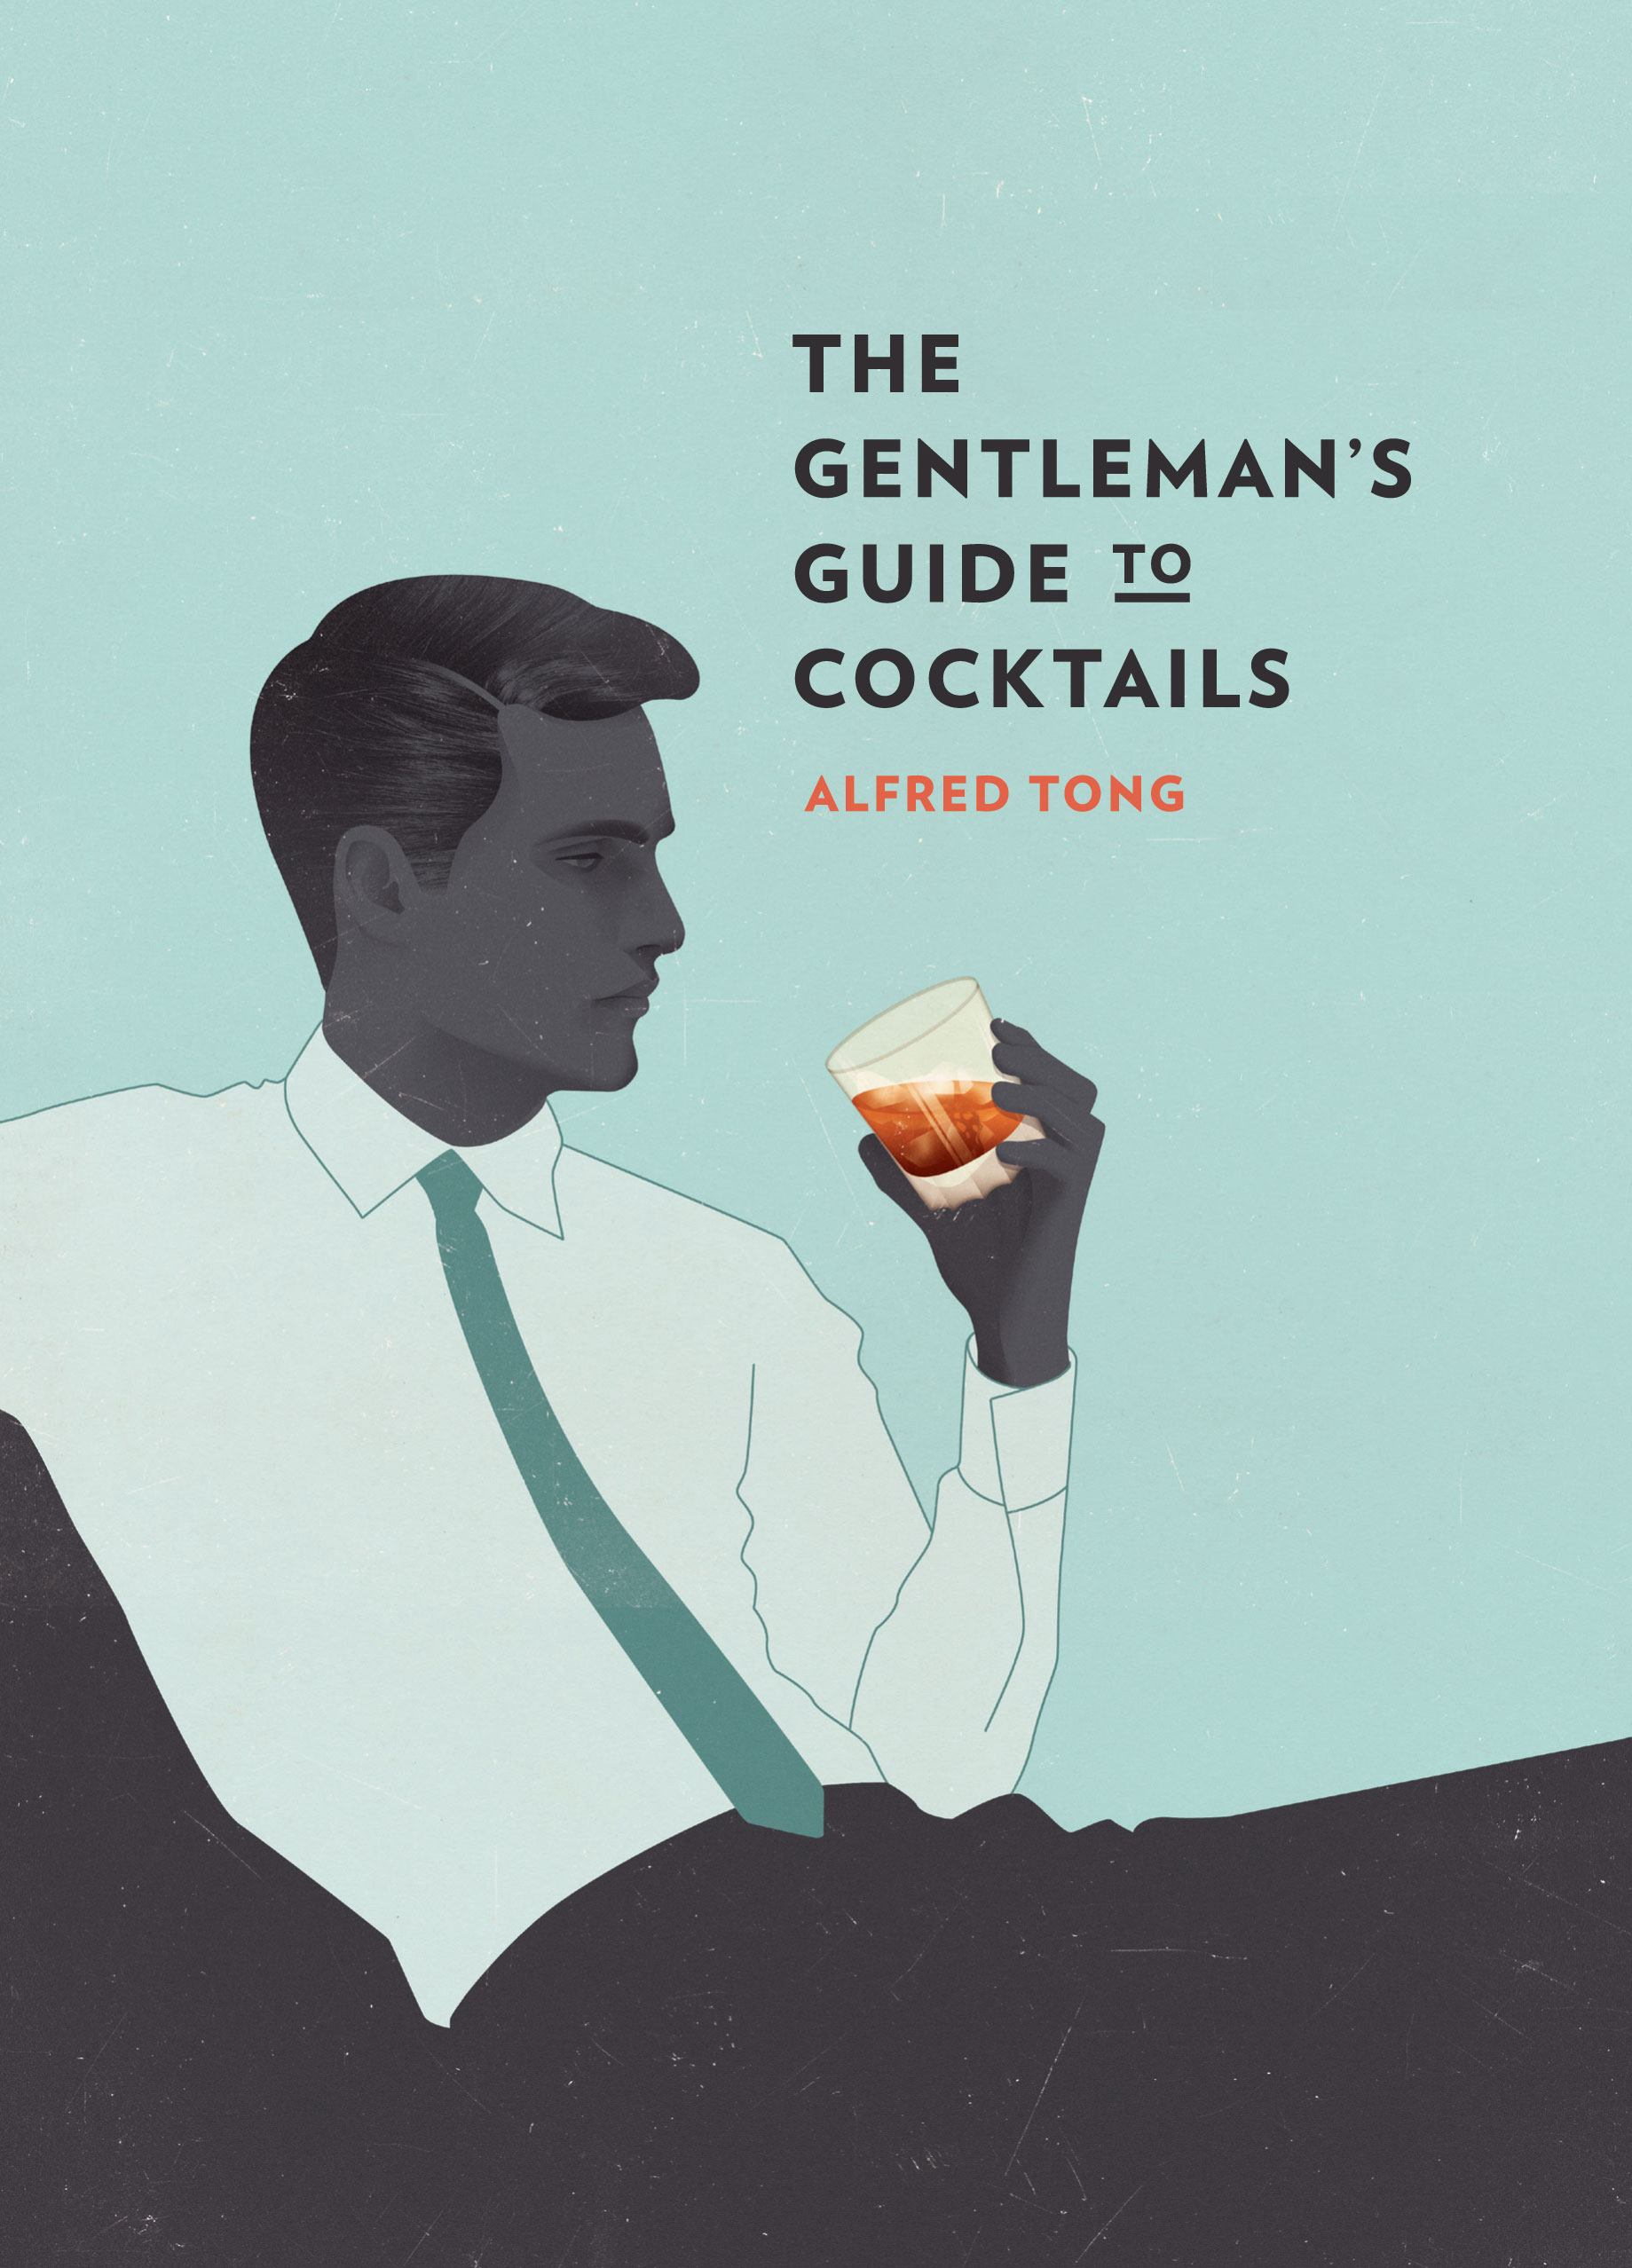 Cocktail etiquette and drinking tips